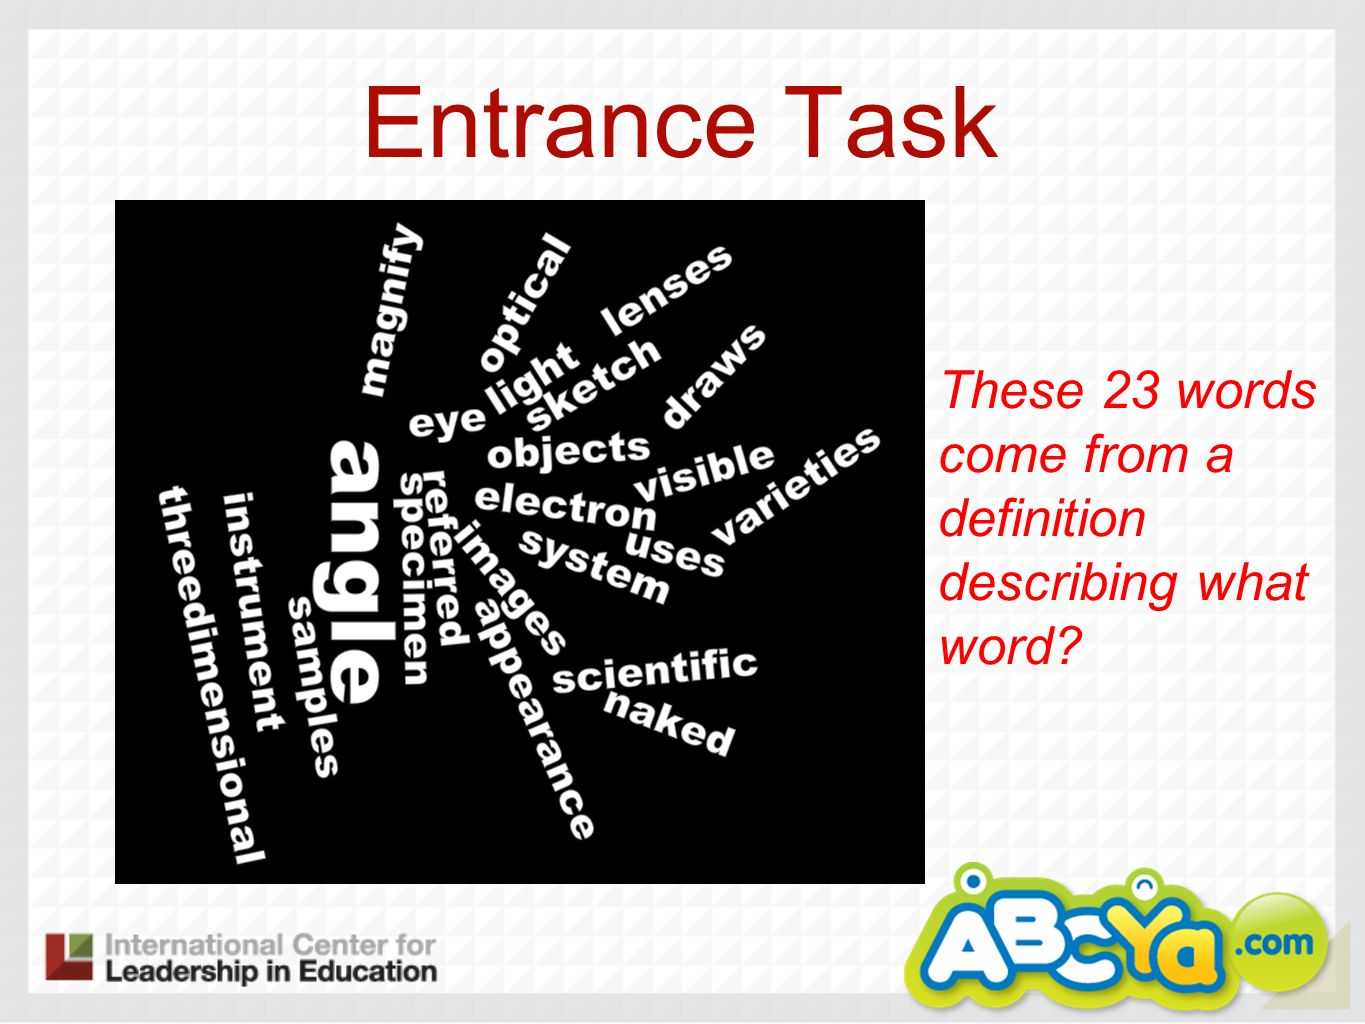 Entrance Task These 23 words come from a definition describing what word